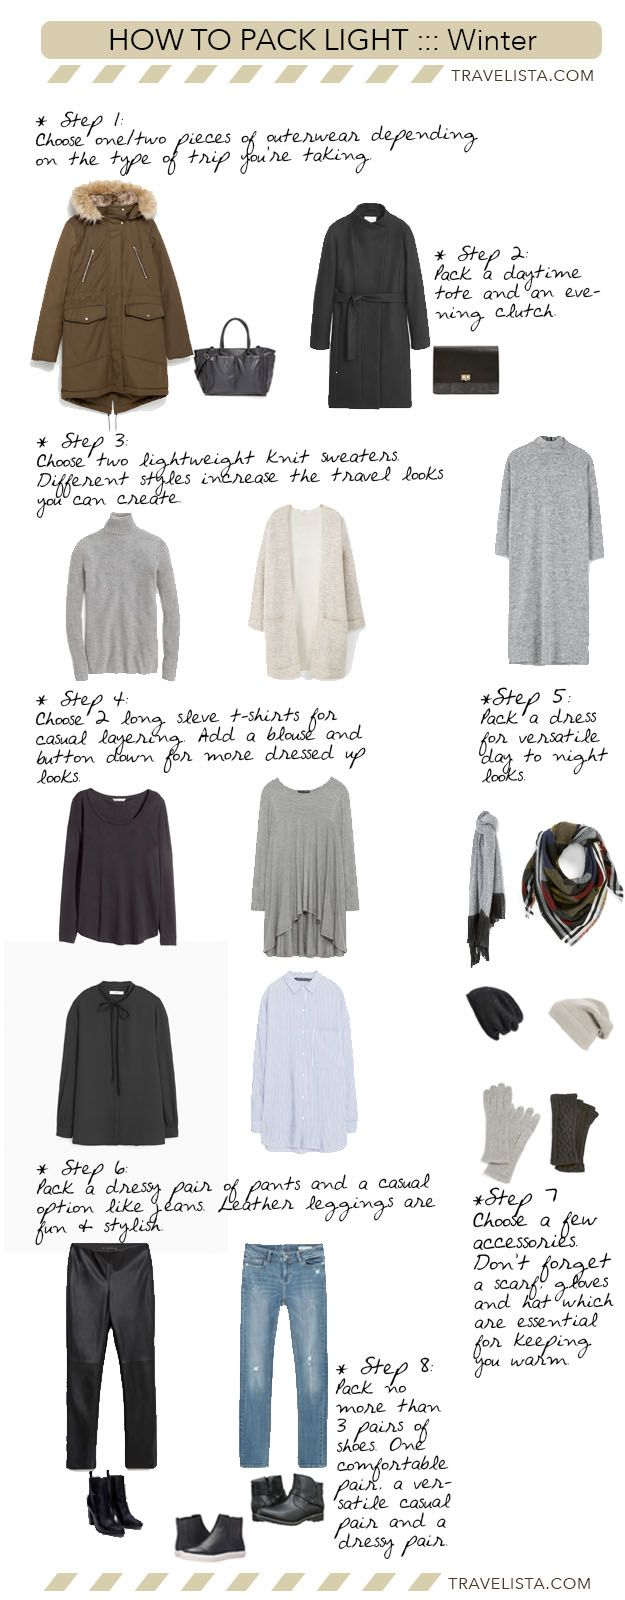 Here's a quick Winter Packing Light Travel Capsule to get you through the remaining cold weather. If you need a refresher on how to layer during winter travel, read my thorough Guide to Cold Weather Layering. It's truly all about smart layering for winter travel. This 11 piece capsule should be used as a guide...